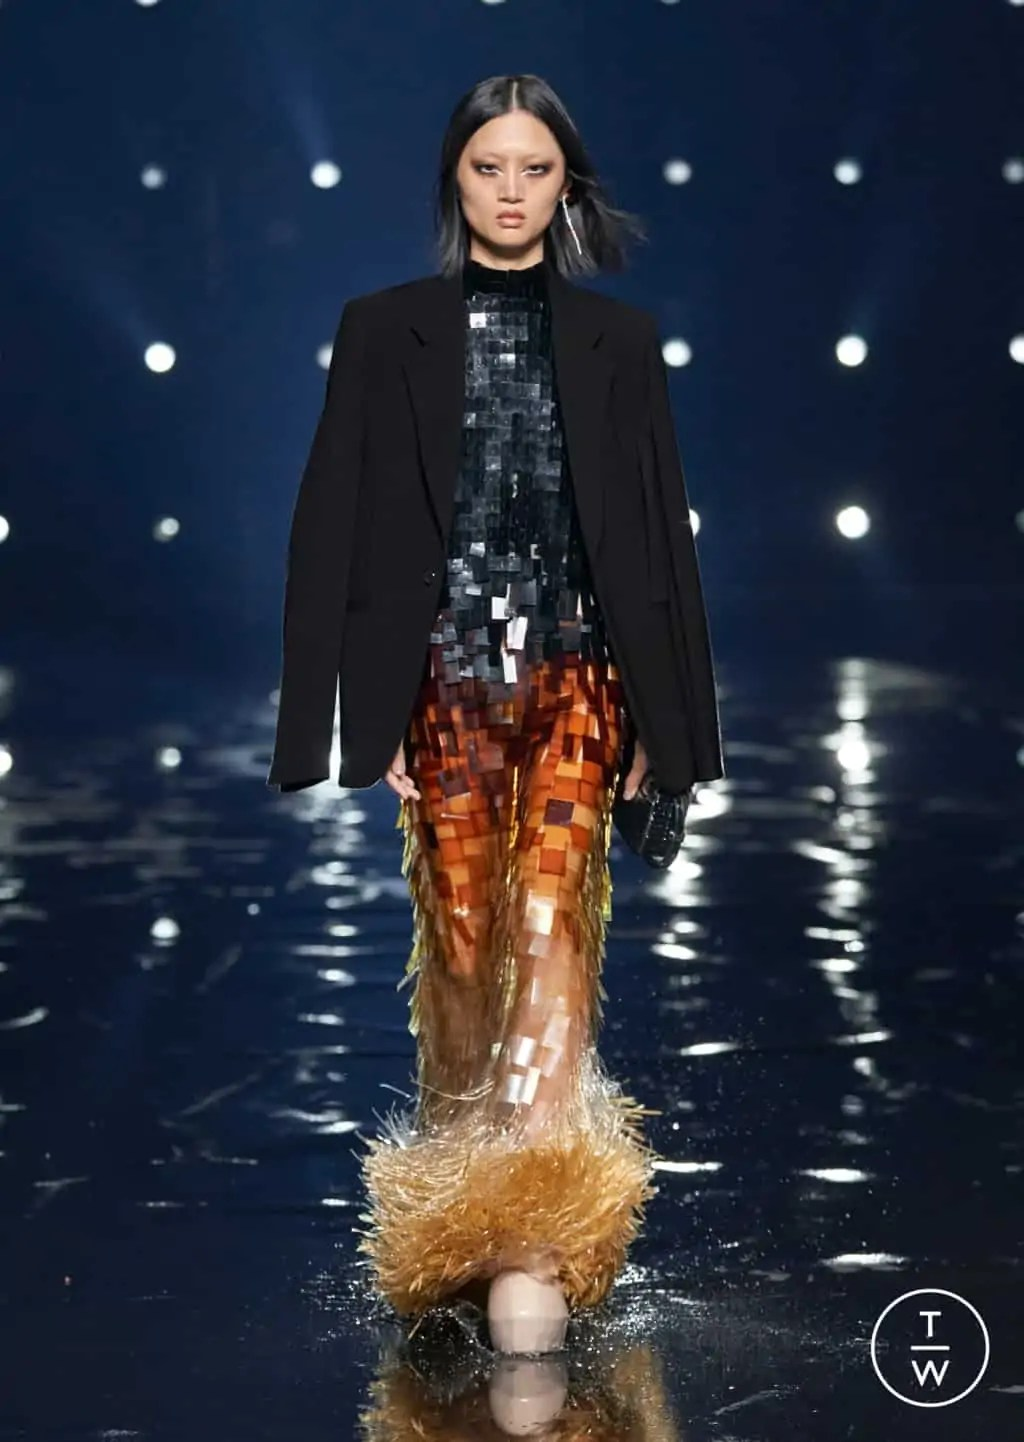 GIVENCHY FALL/WINTER 2021 — Look 56